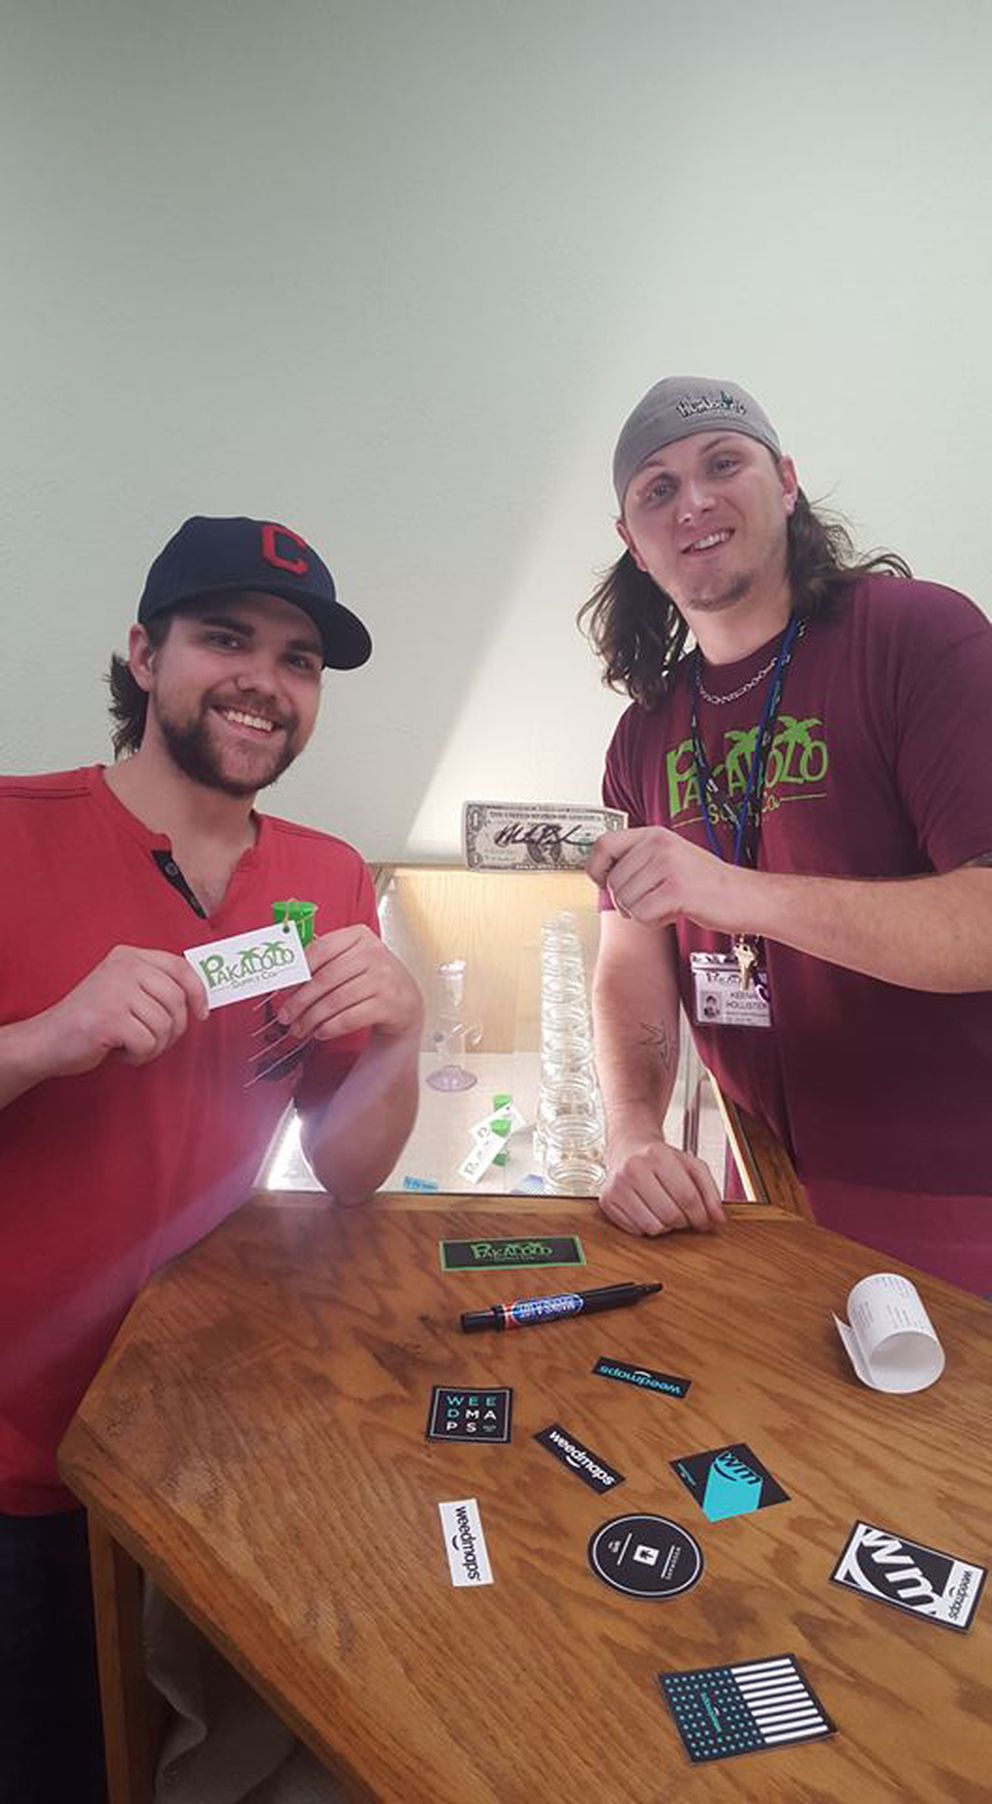 Mike Pokrivnak, left, and co-owner of Pakalolo Supply Co. Keenan Hollister pose after Pokrivnak makes the first legal cannabis purchase in Alaska. (Pakalolo Supply Co.)